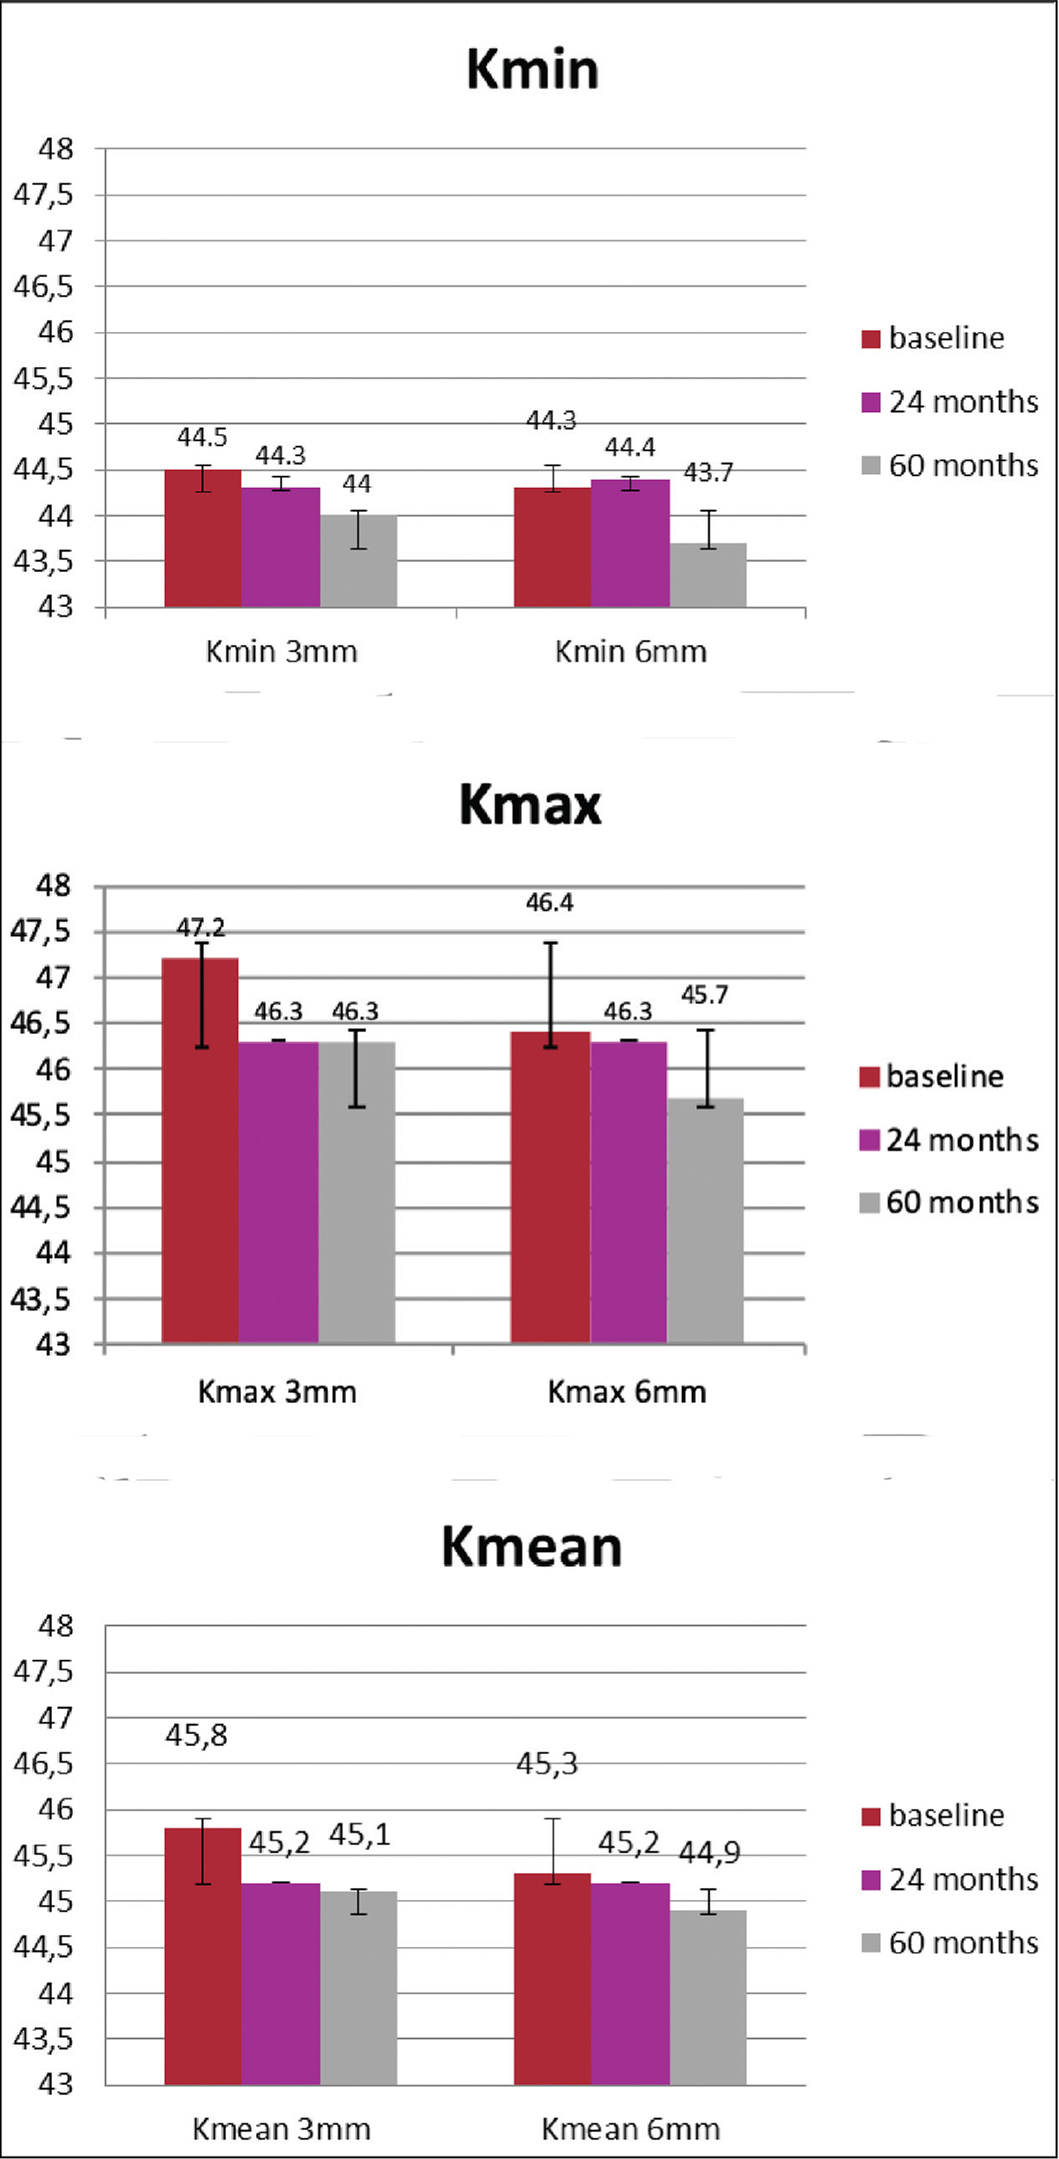 Comparison of maximum, minimum, and mean keratometric values (Kmax, Kmin, Kmean) at 3 and 6 mm before and 24 and 60 months after accelerated corneal cross-linking. Data are represented as mean ± standard deviation.